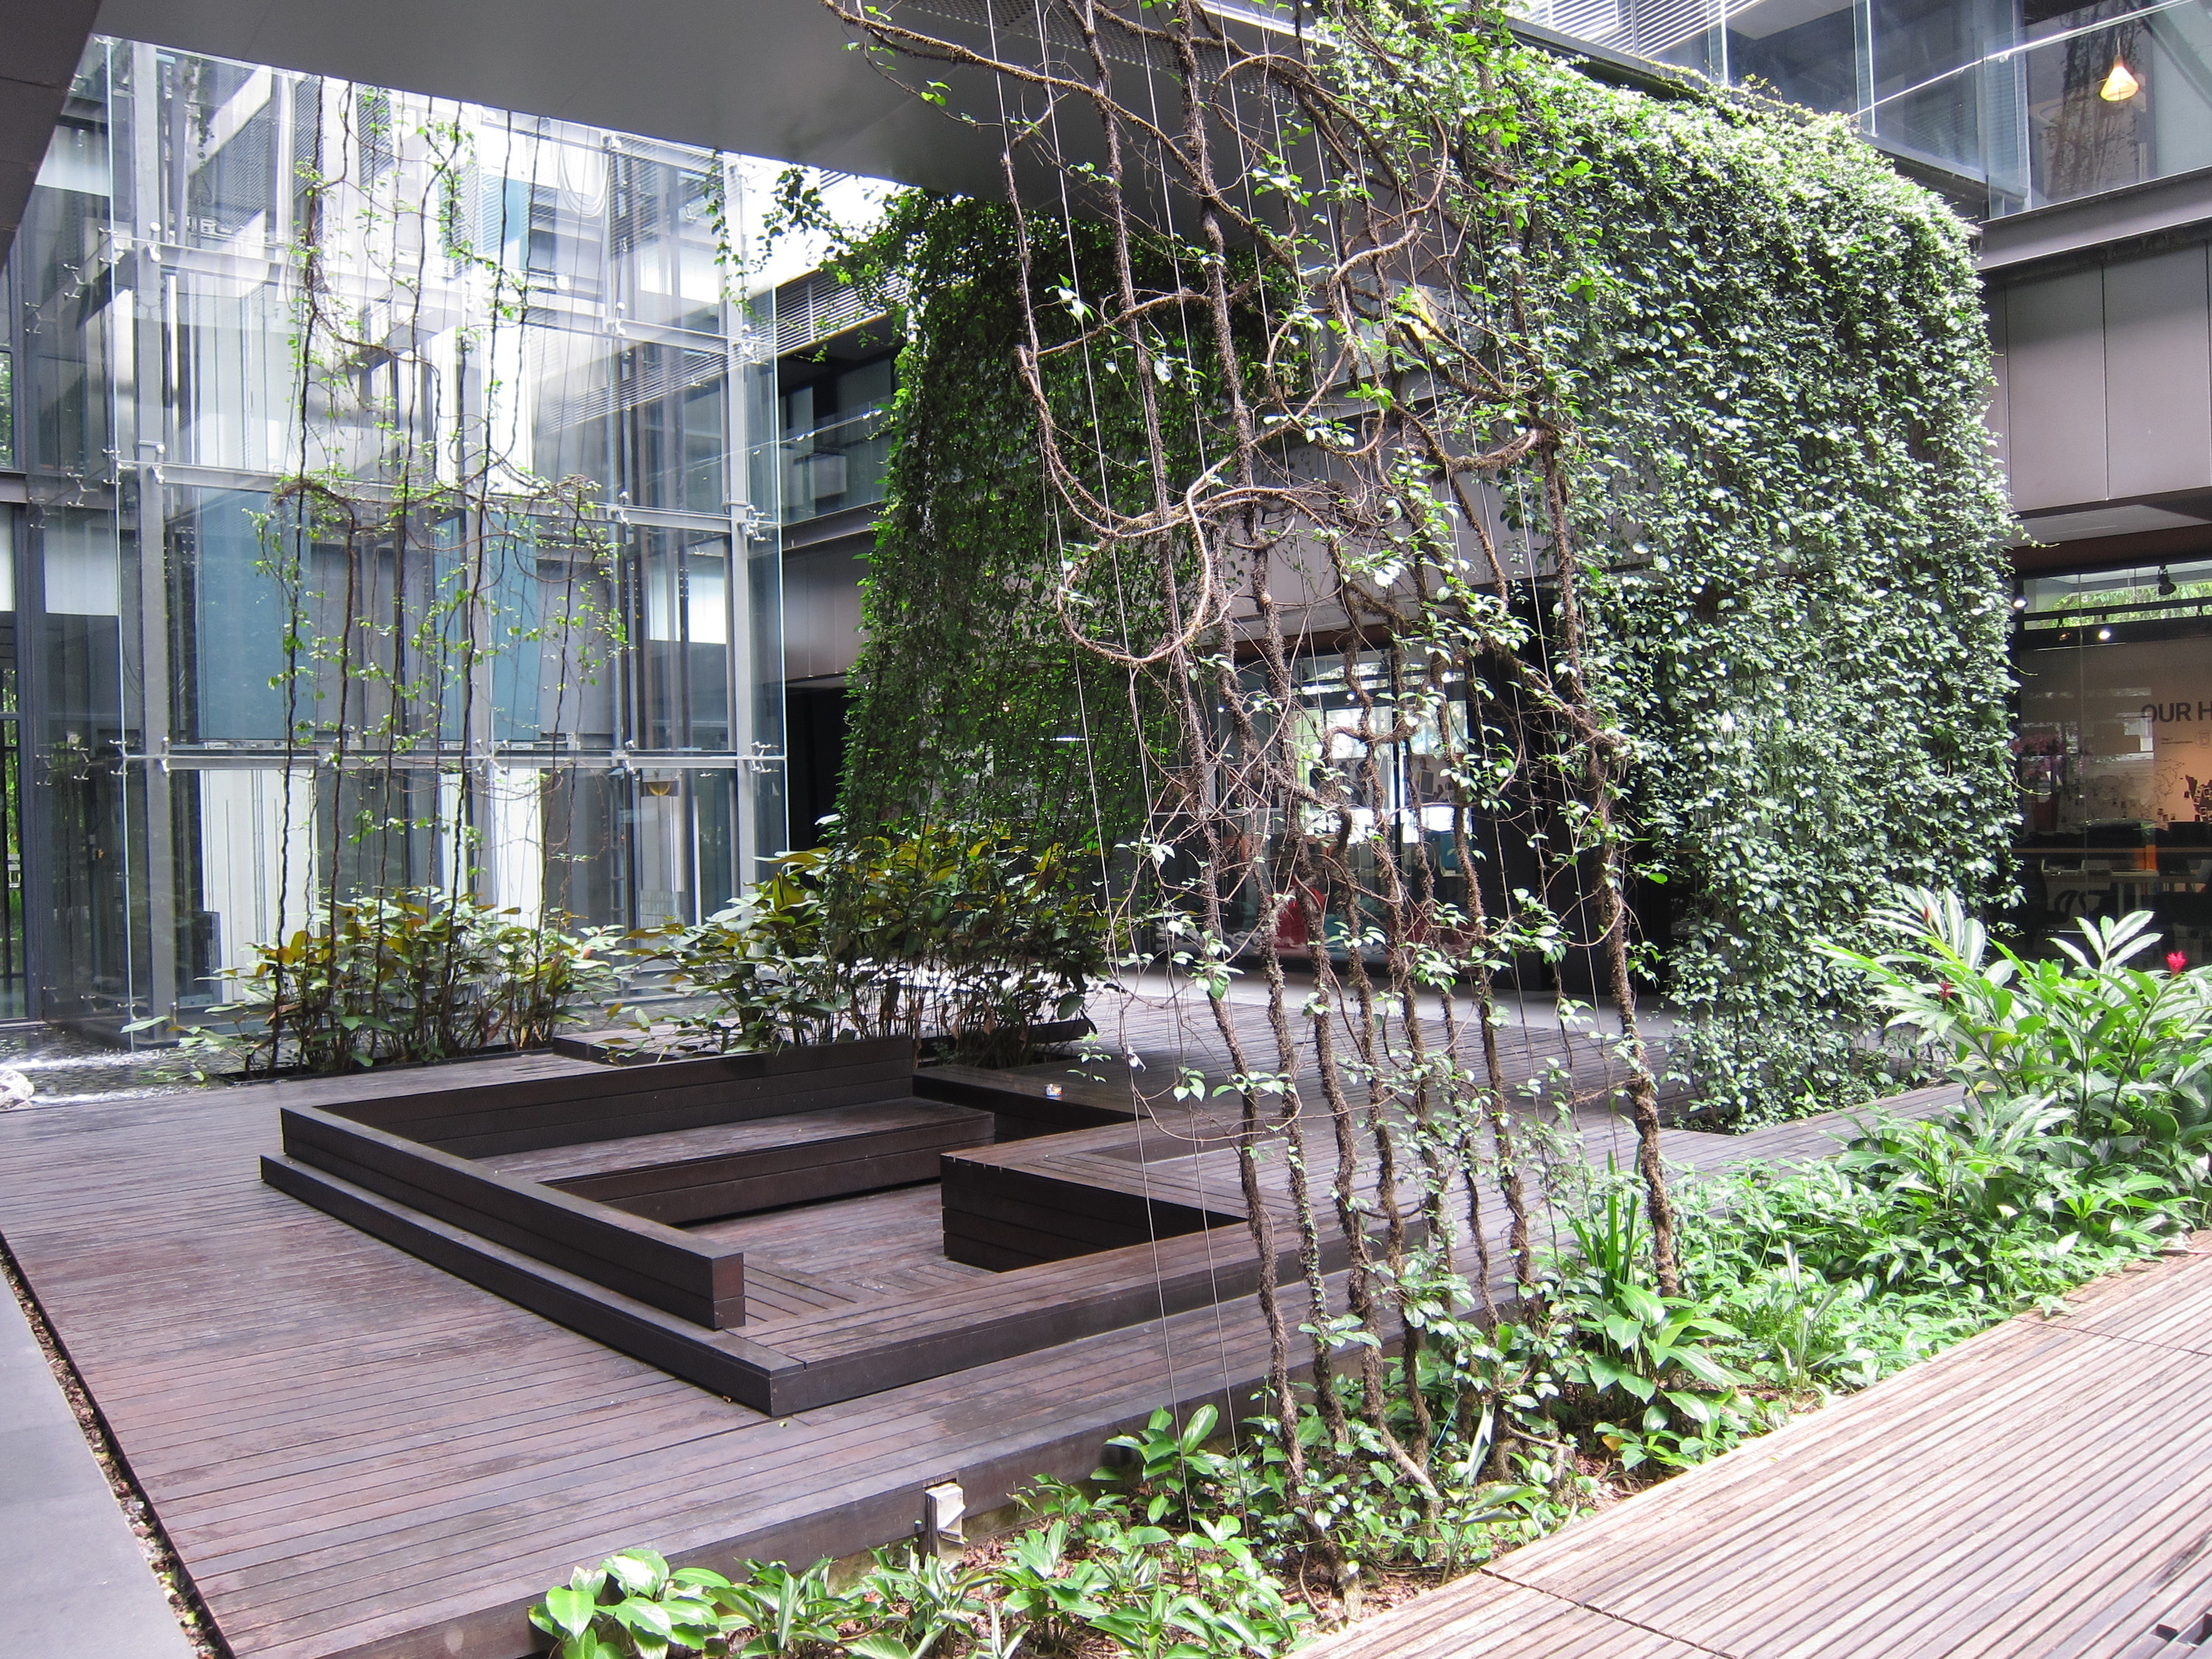 Quiet KL: Where to relax in the city